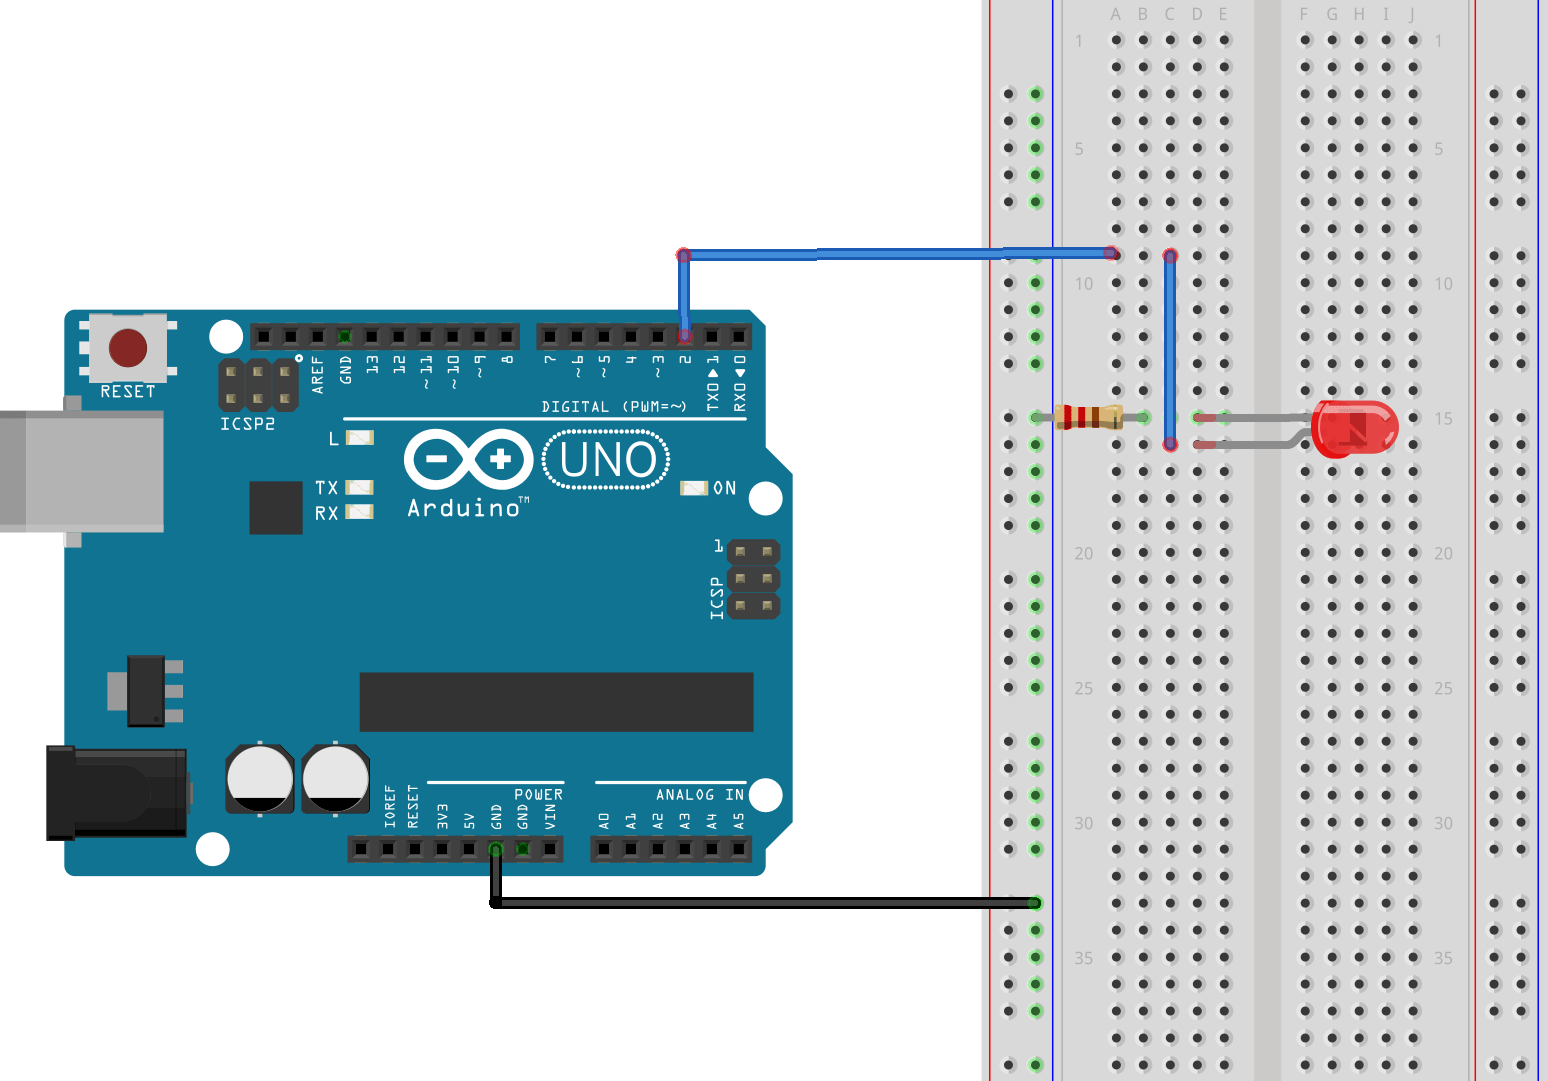 small resolution of to change the brightness of the led the program will vary the duty cycle of the pwm signal output of pin 2